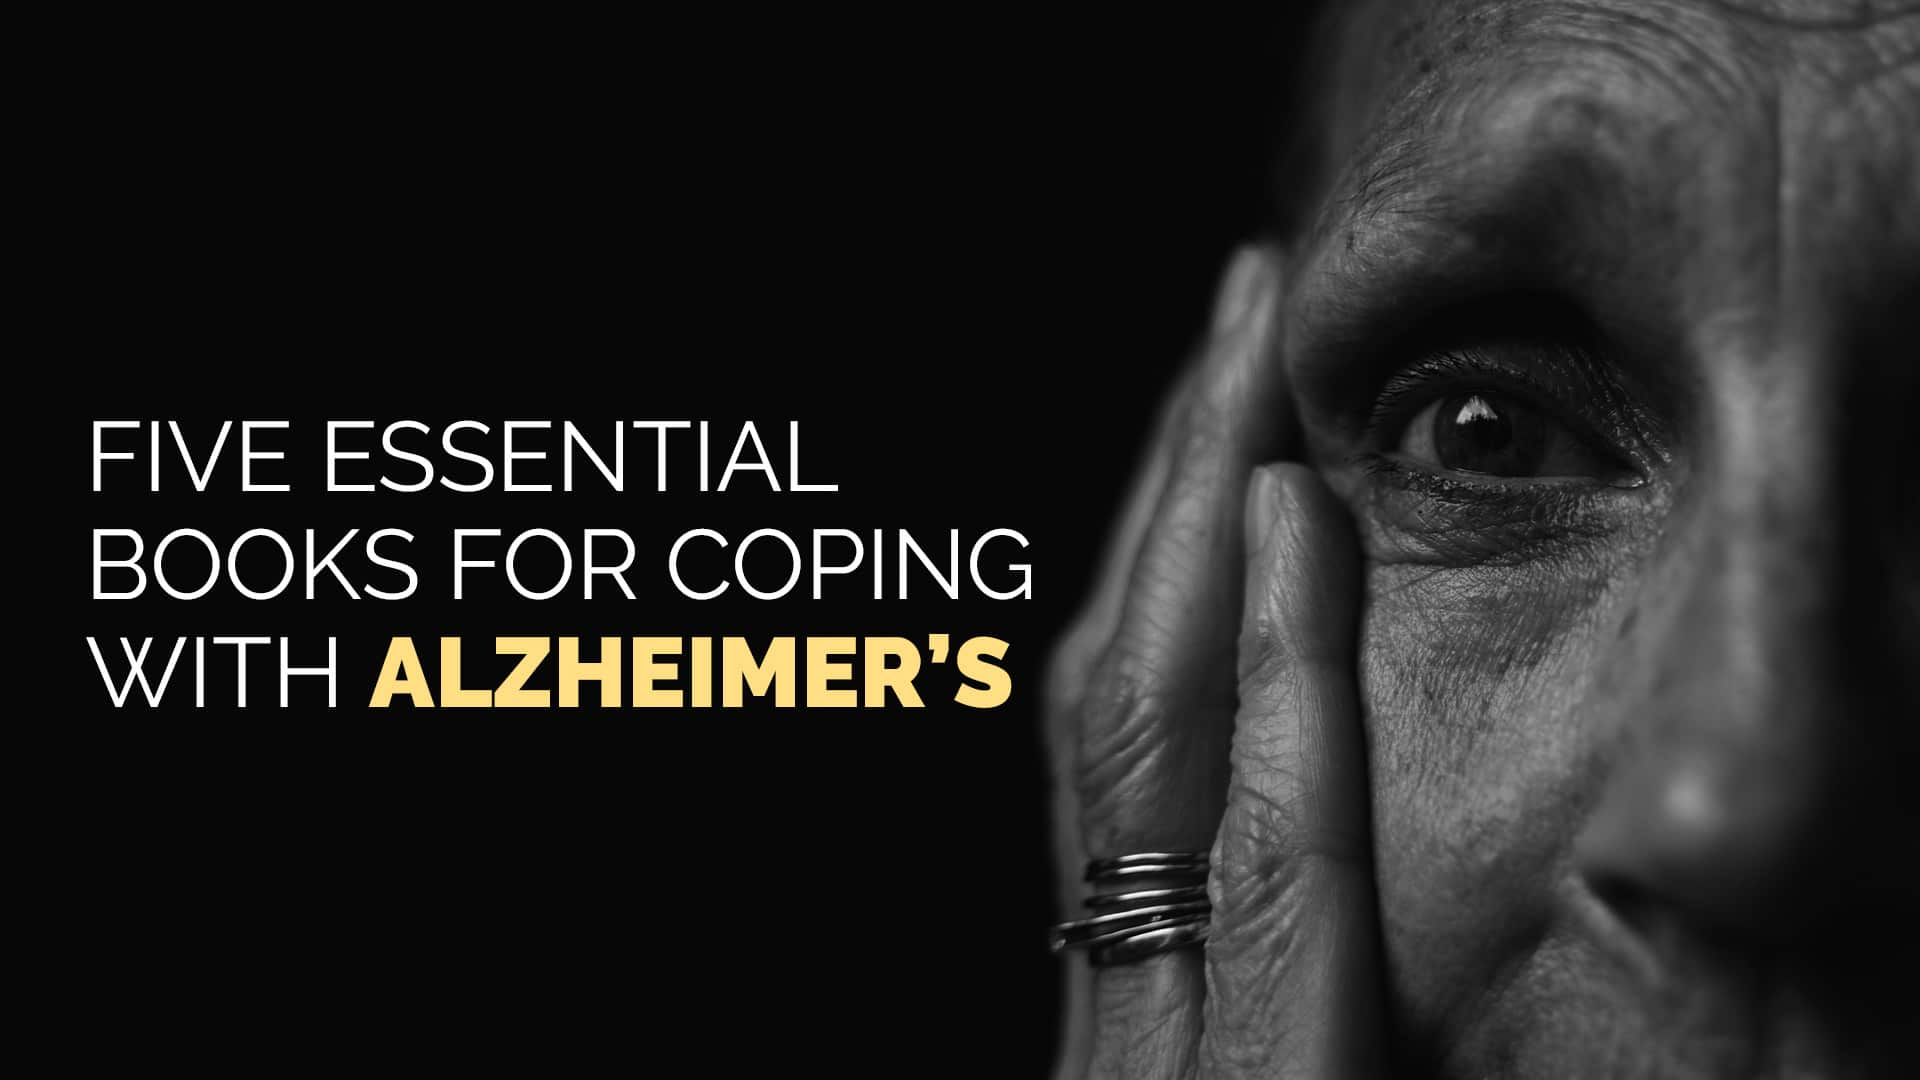 Five Essential Books for Coping with Alzheimer's